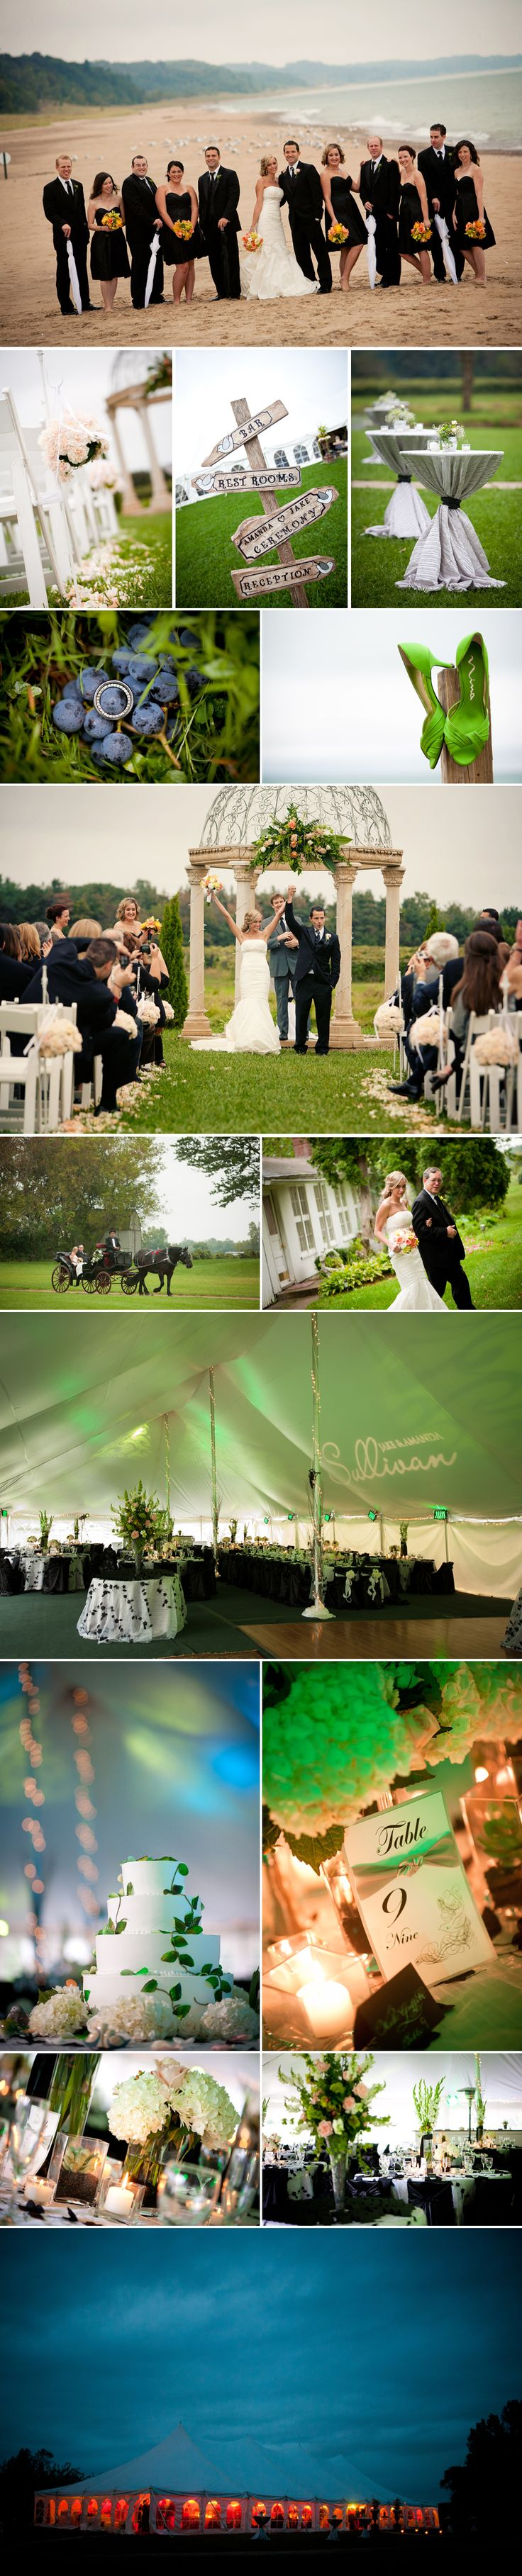 114 best fun wedding inspirations images on pinterest marriage